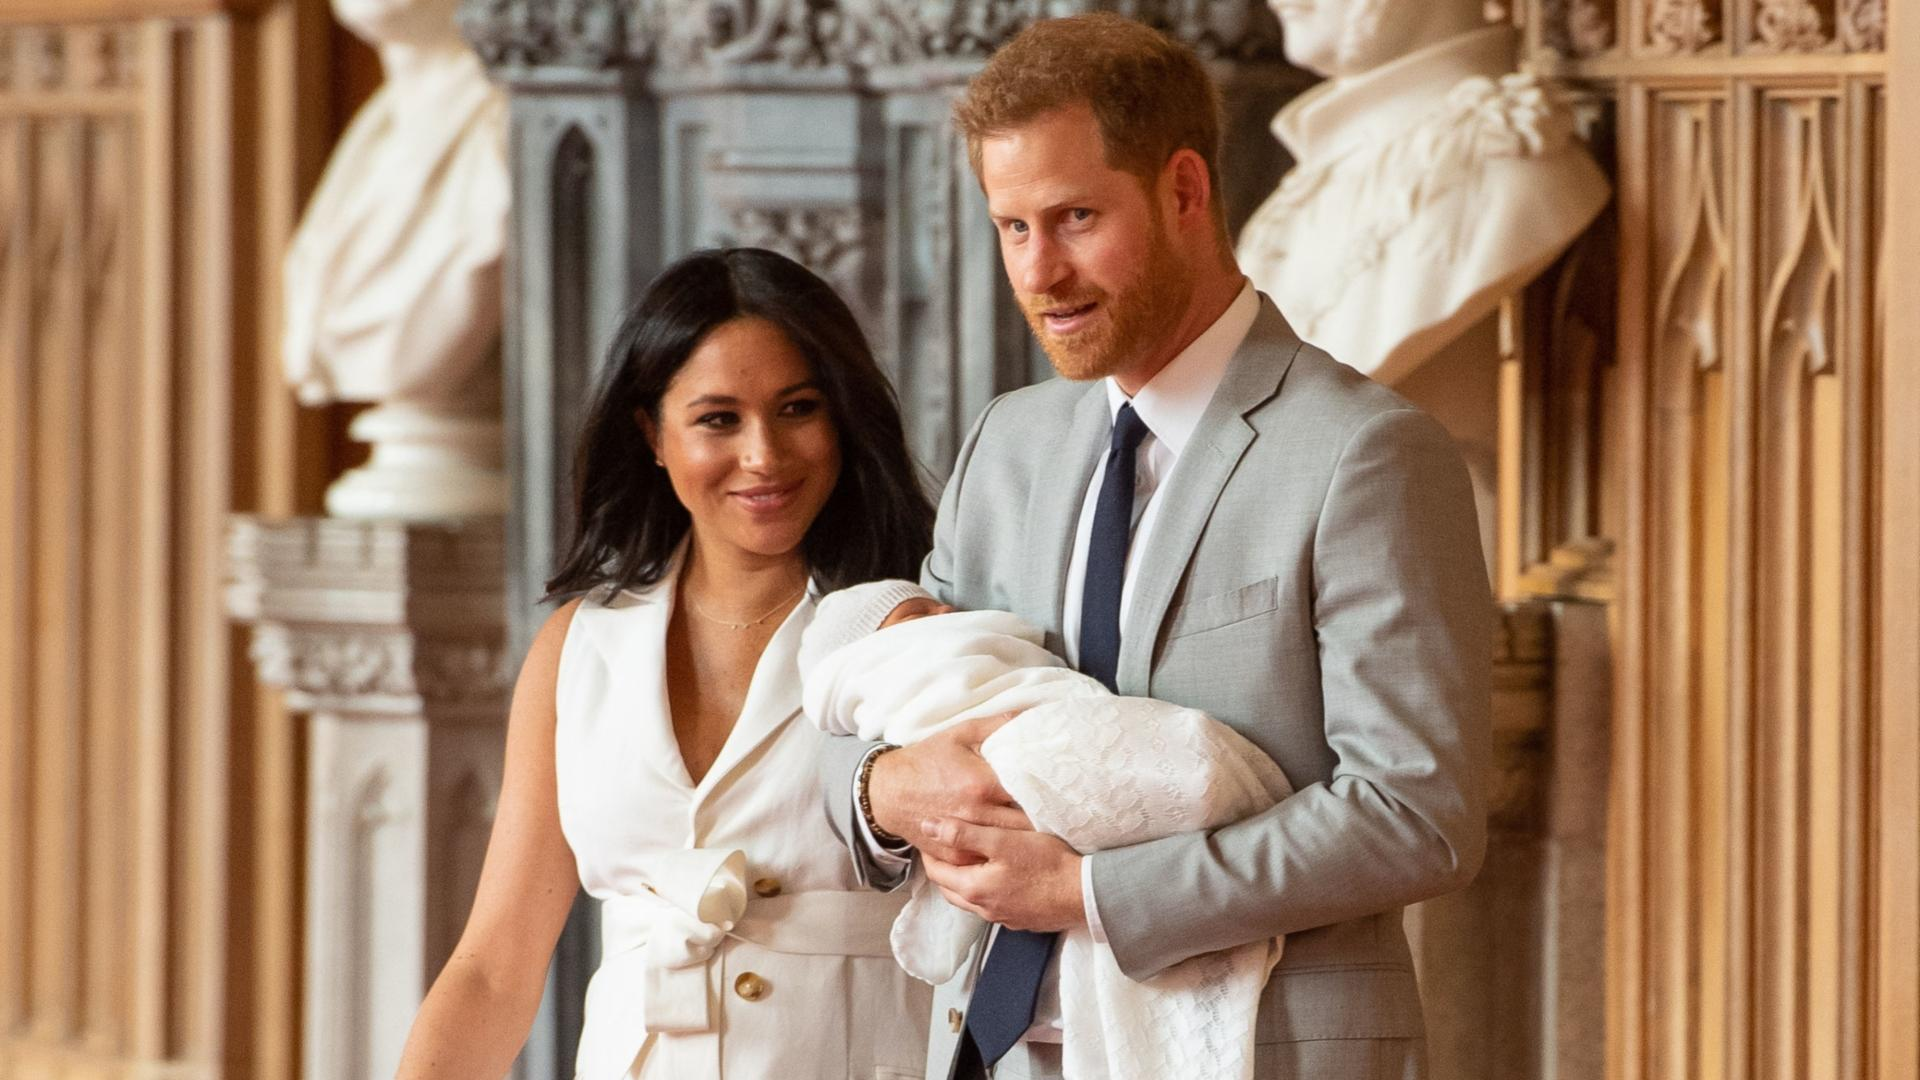 Meghan Markle Celebrates First Mother's Day with Sweetest Photo of Baby  Archie